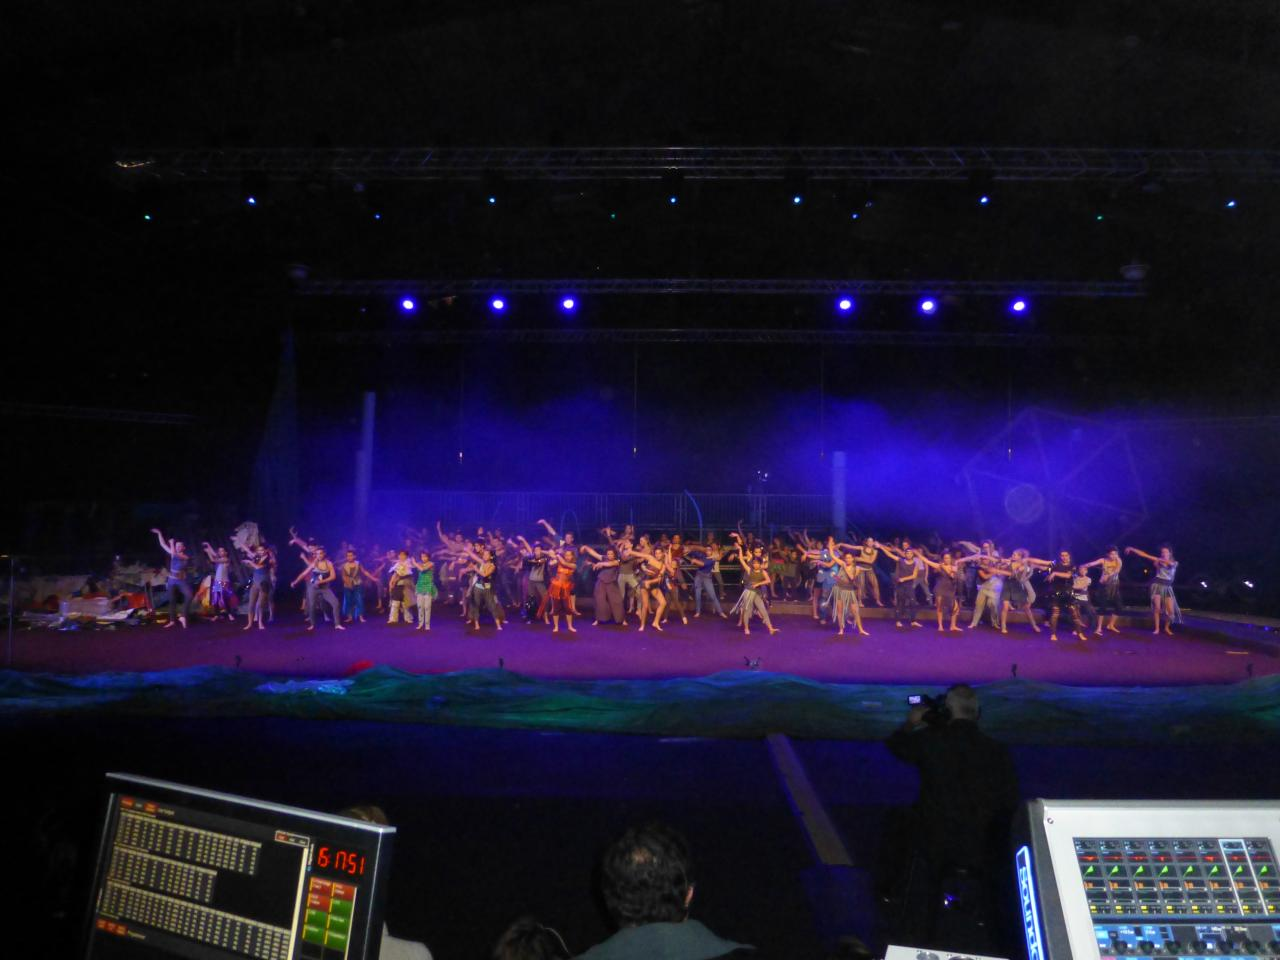 Spectacle 2013